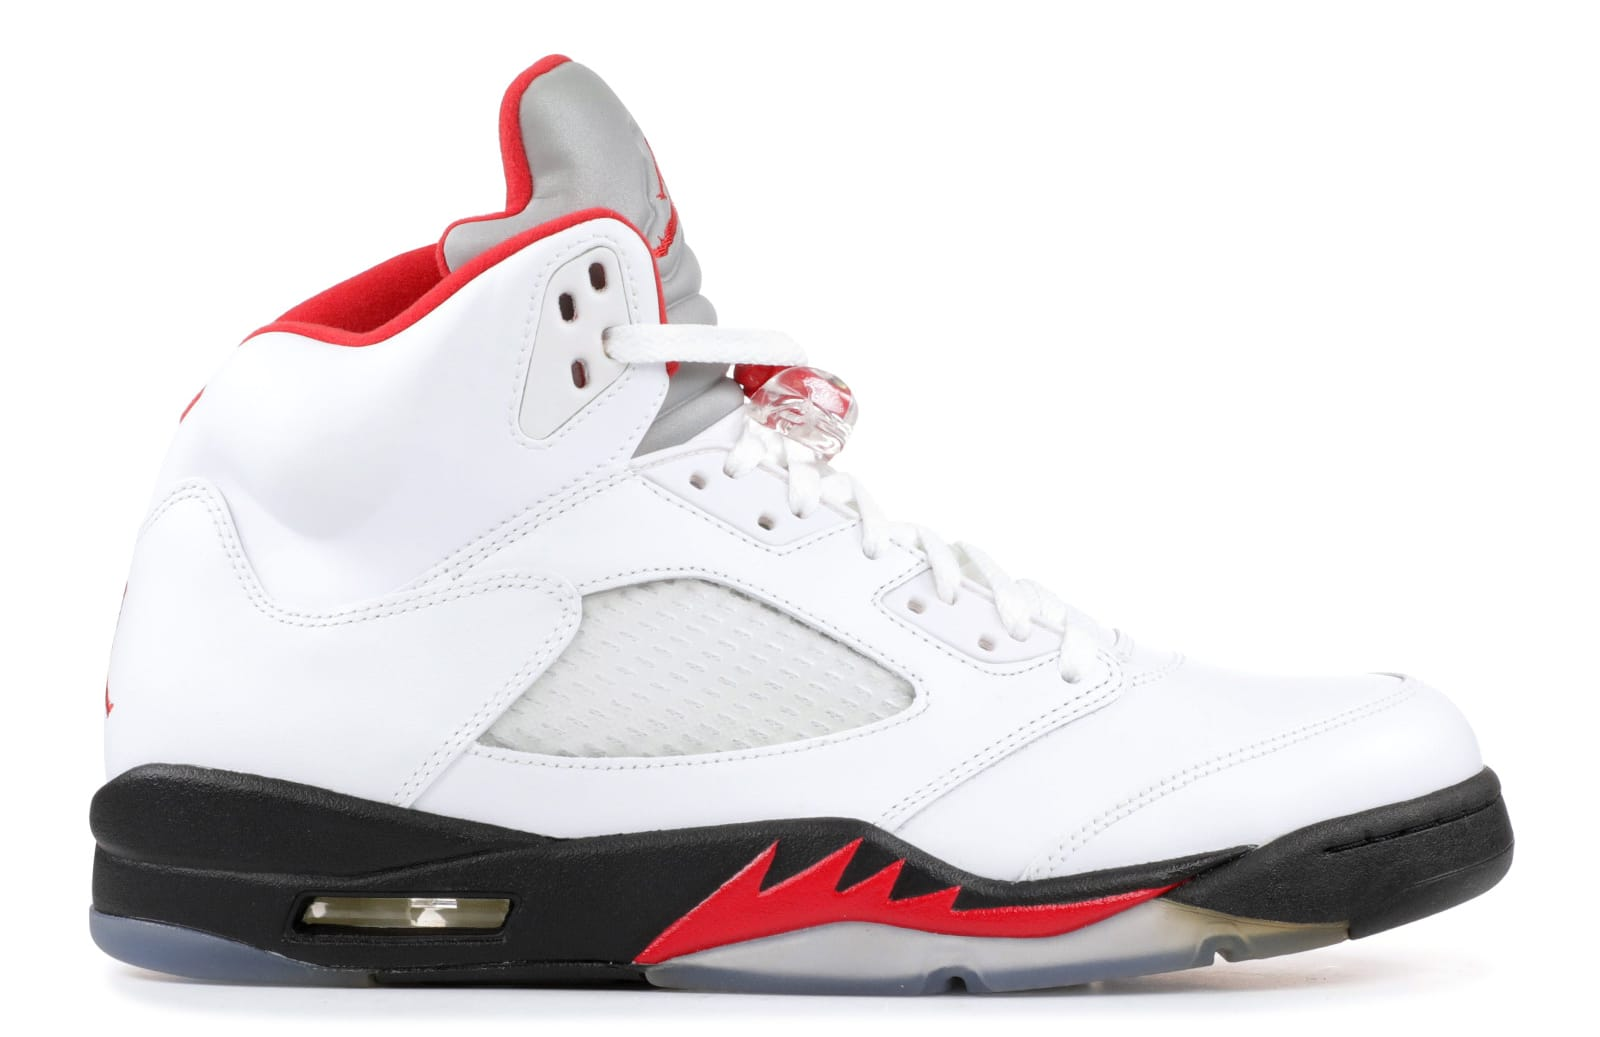 Air Jordan 5 'White/Fire Red/Black'